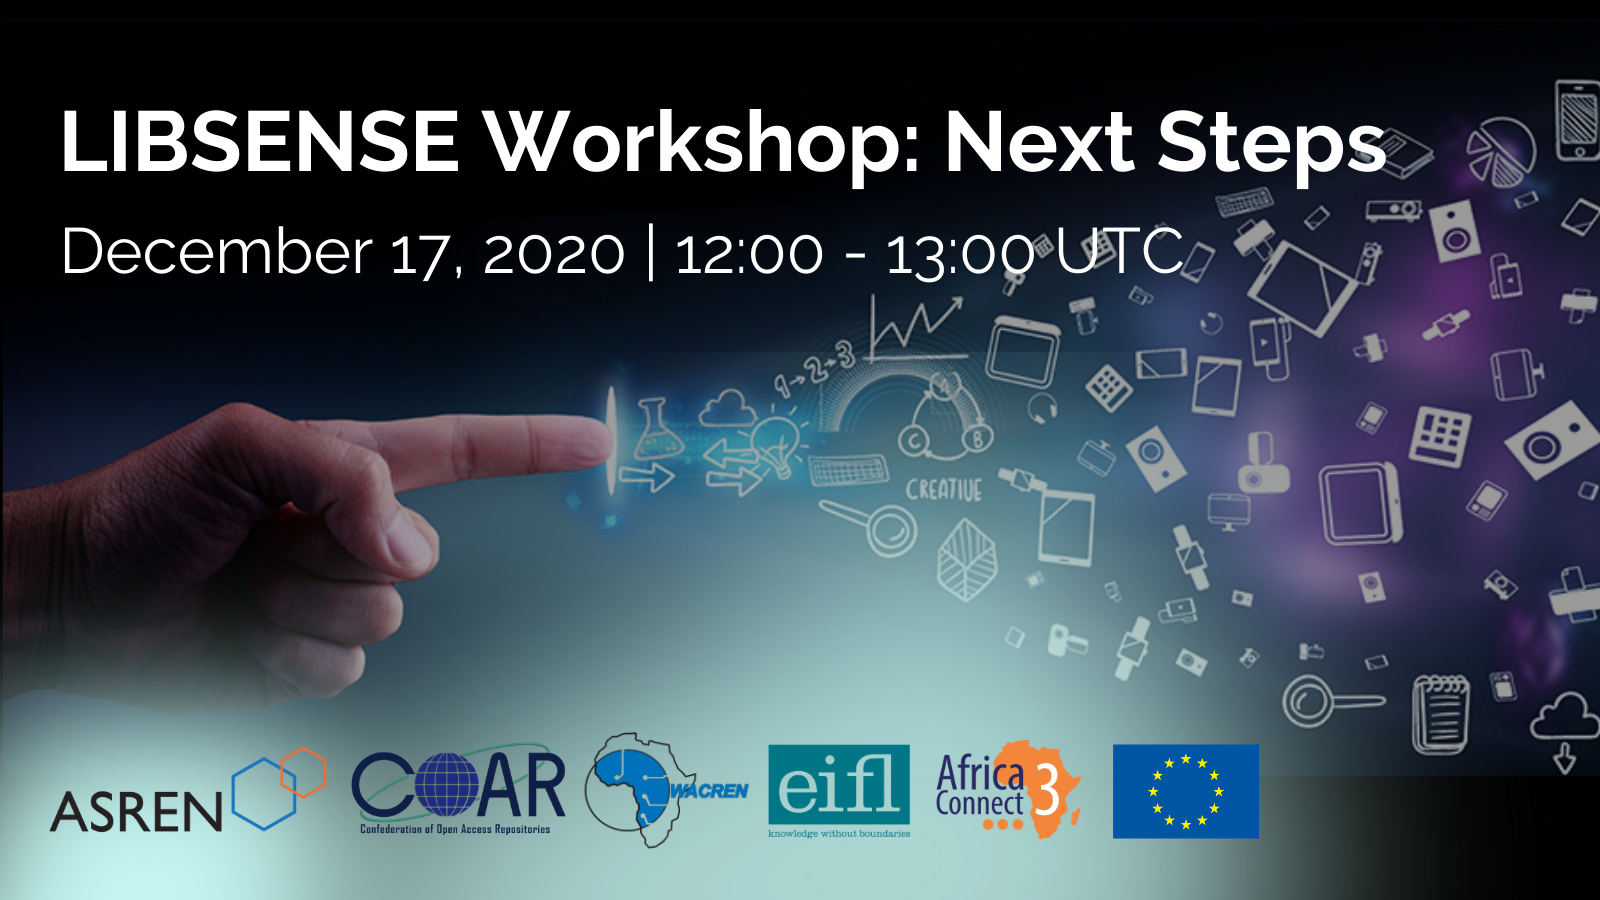 LIBSENSE Workshop